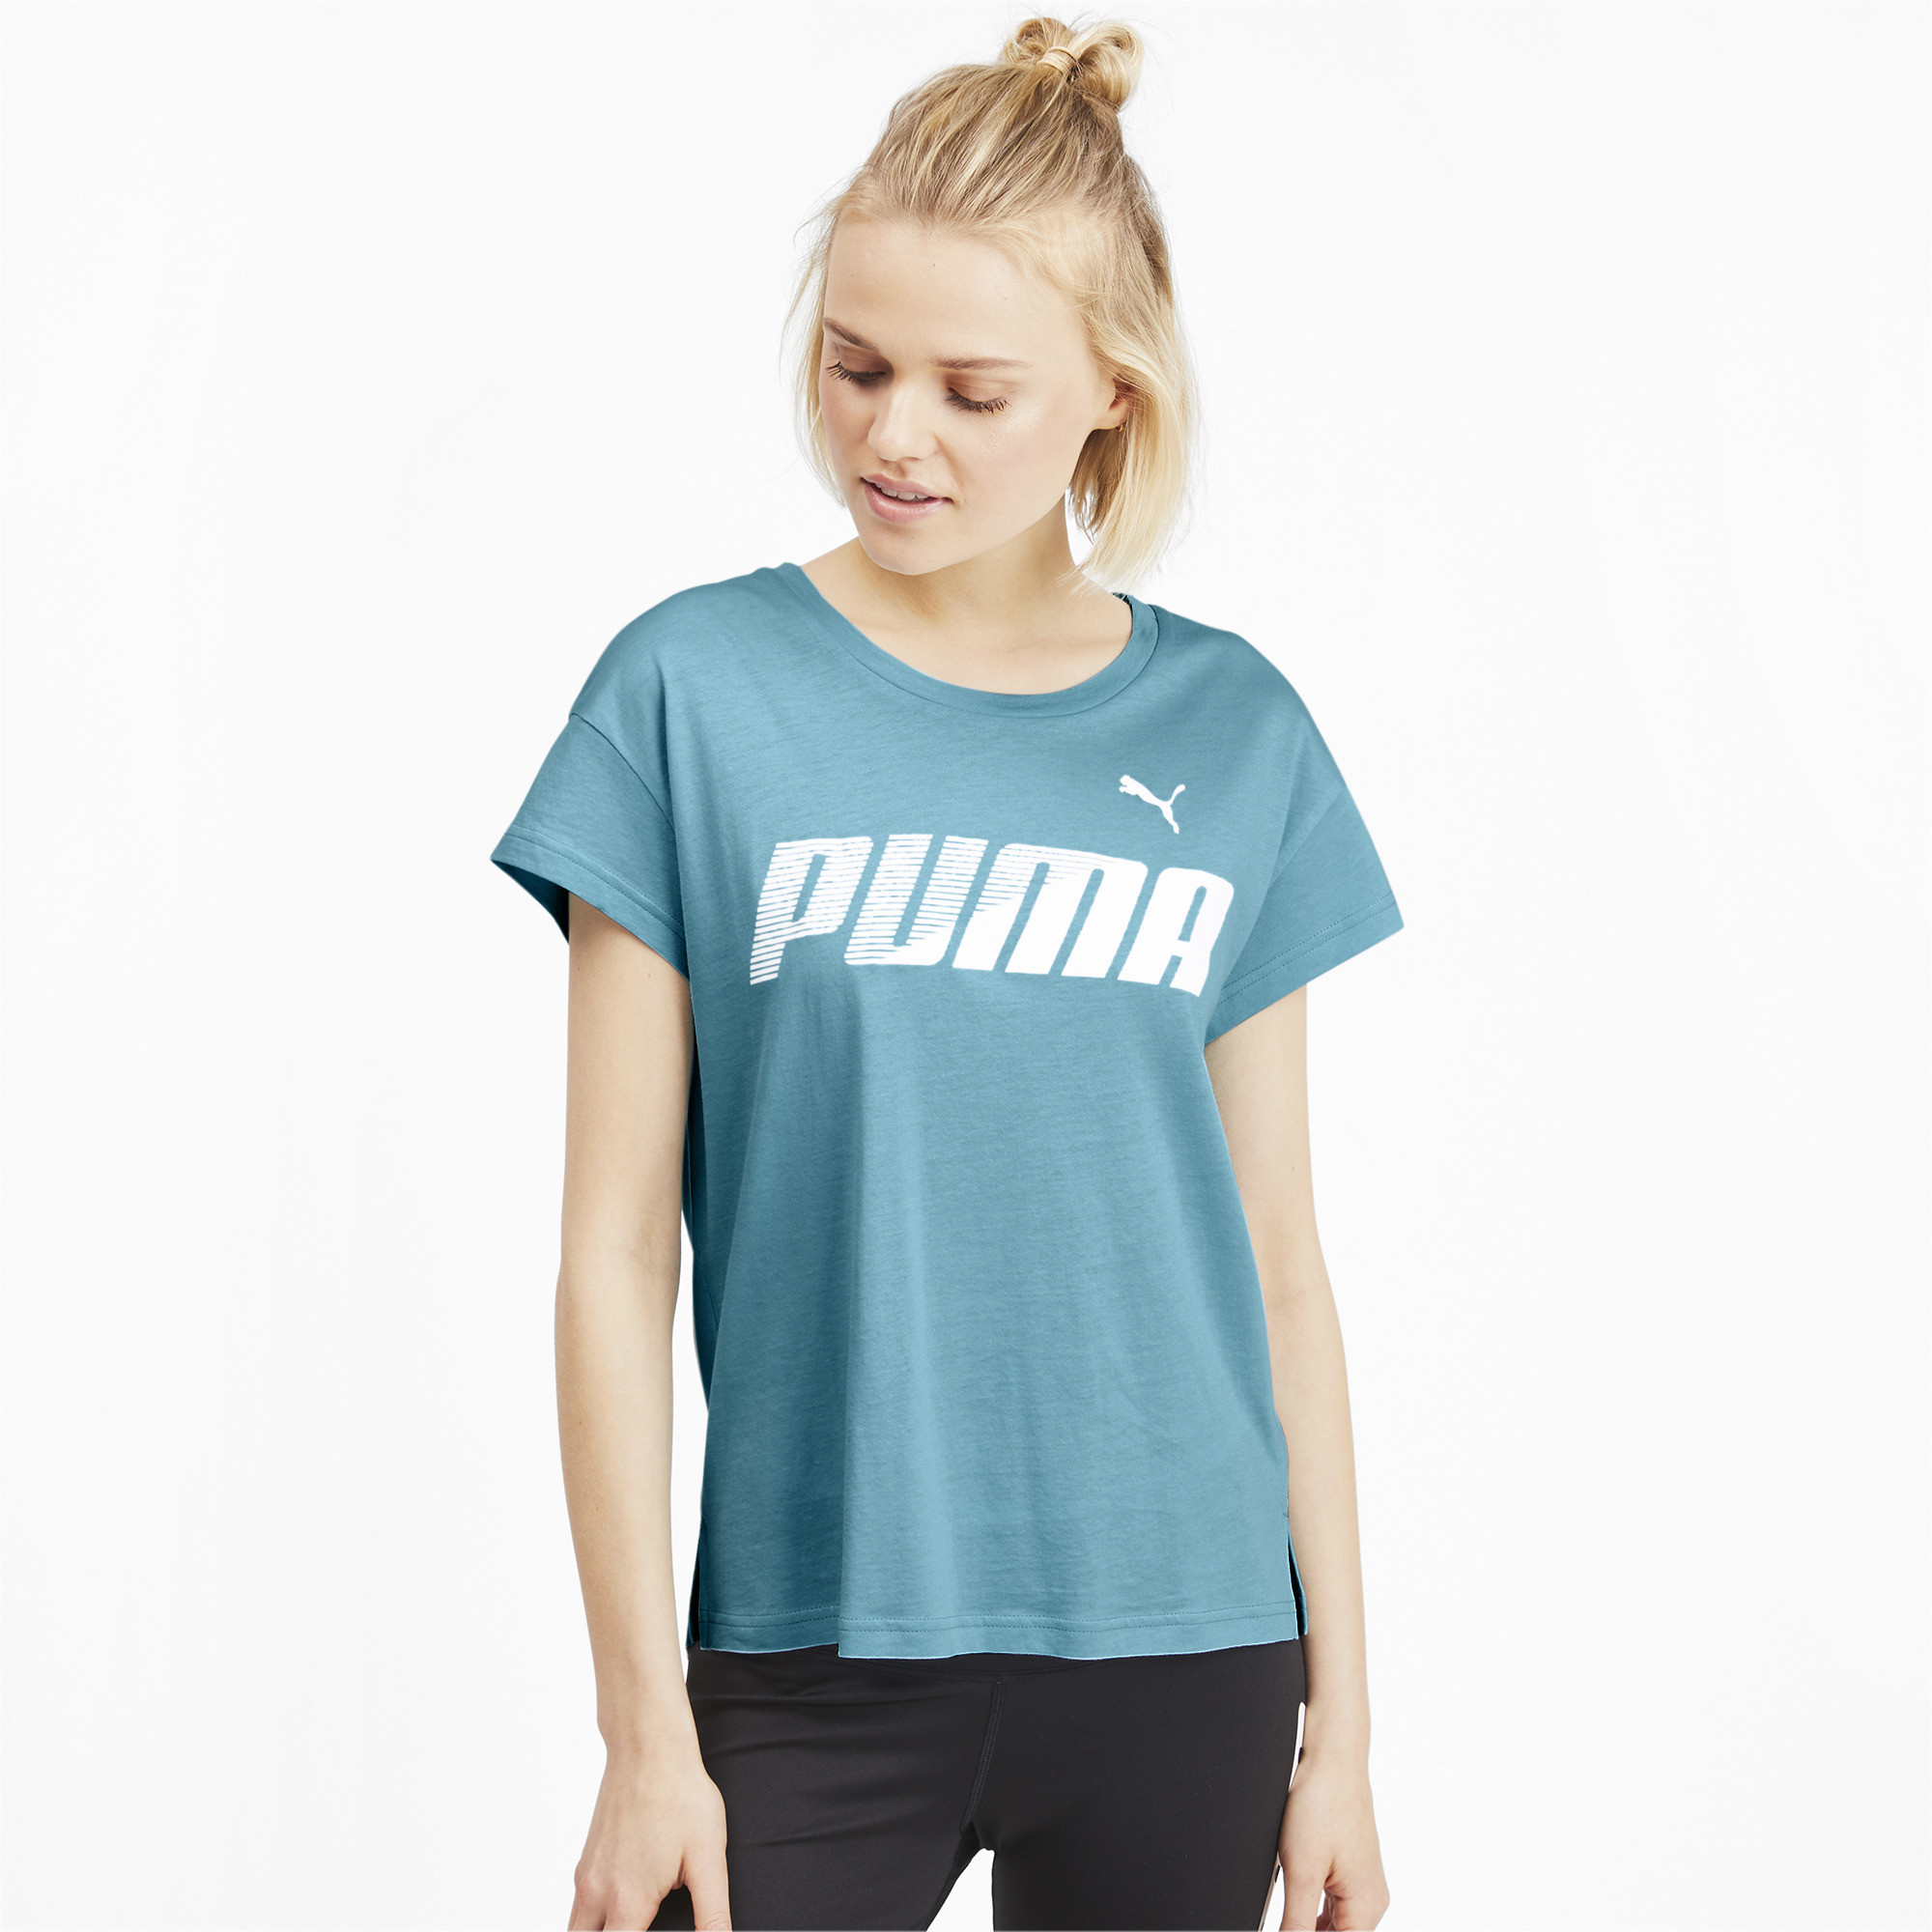 PUMA-Modern-Sports-Women-039-s-Graphic-Tee-Women-Tee-Basics thumbnail 14